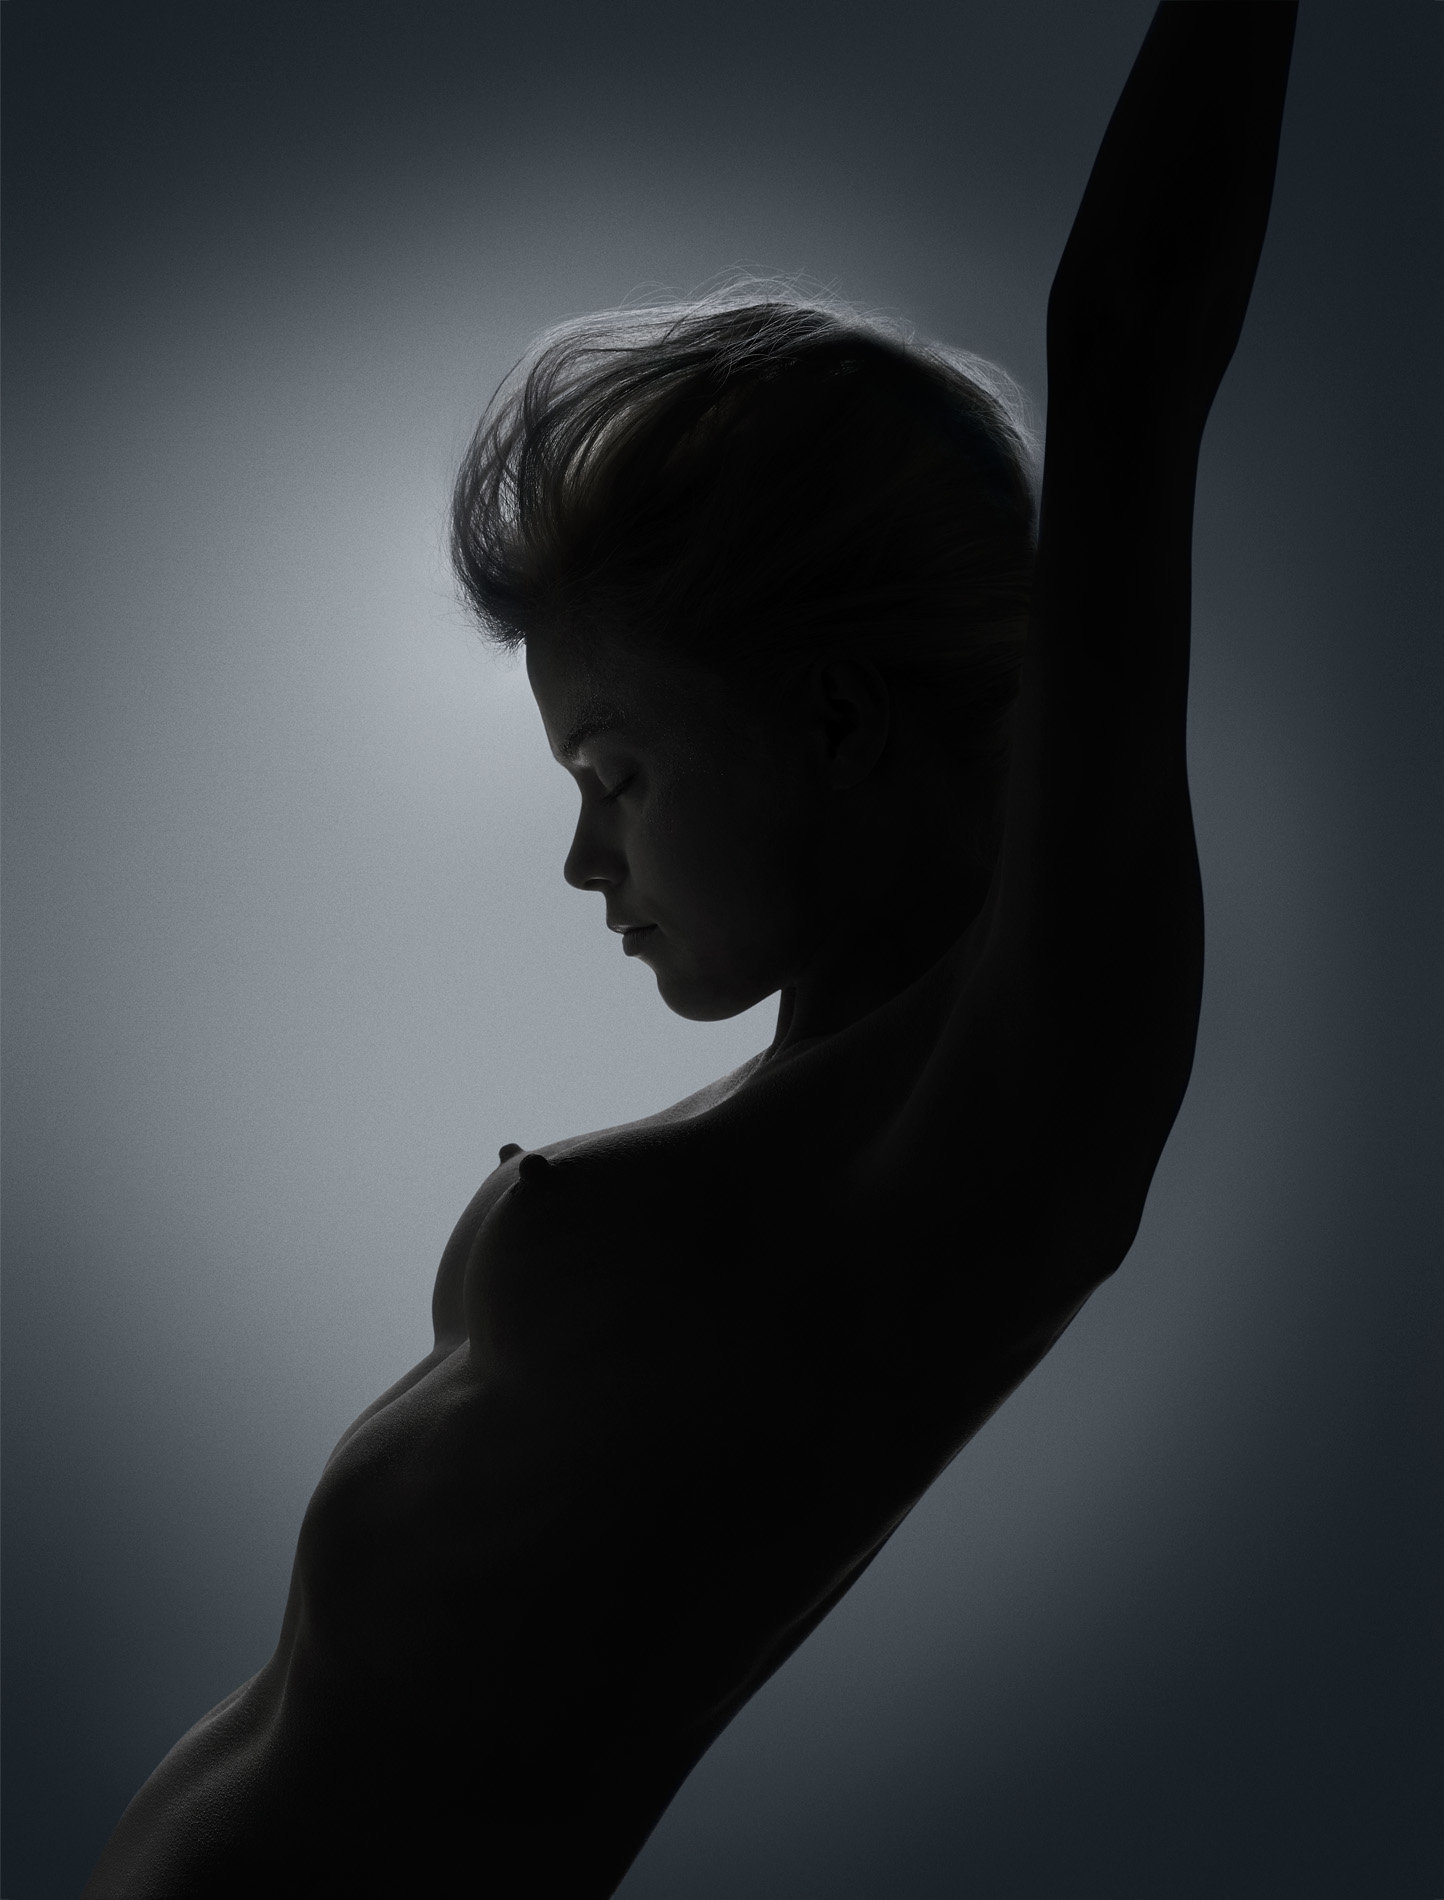 Dark nude female silhouette